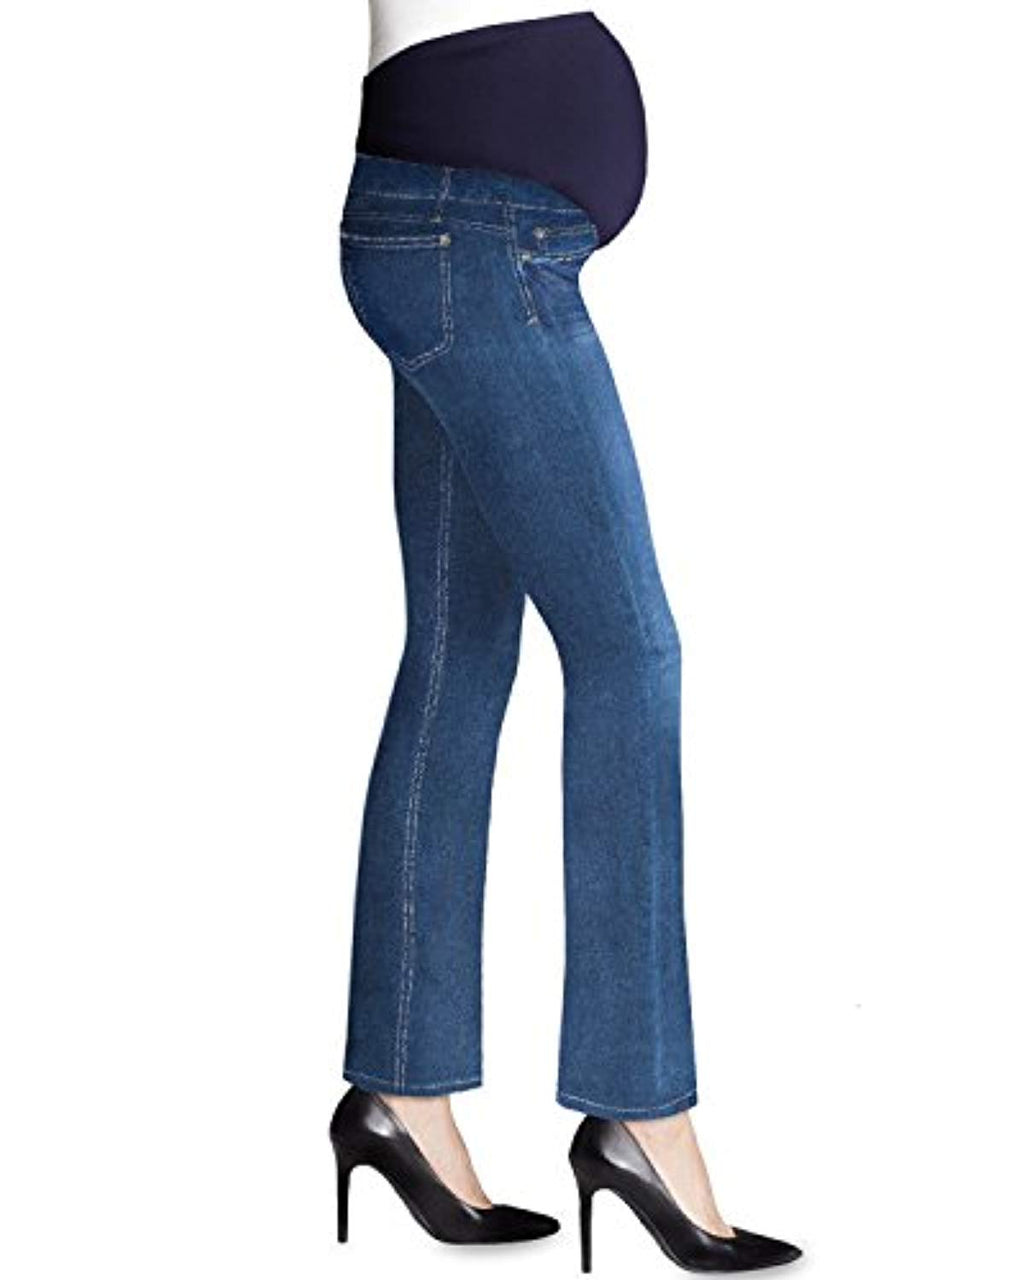 full panel bootcut maternity jeans